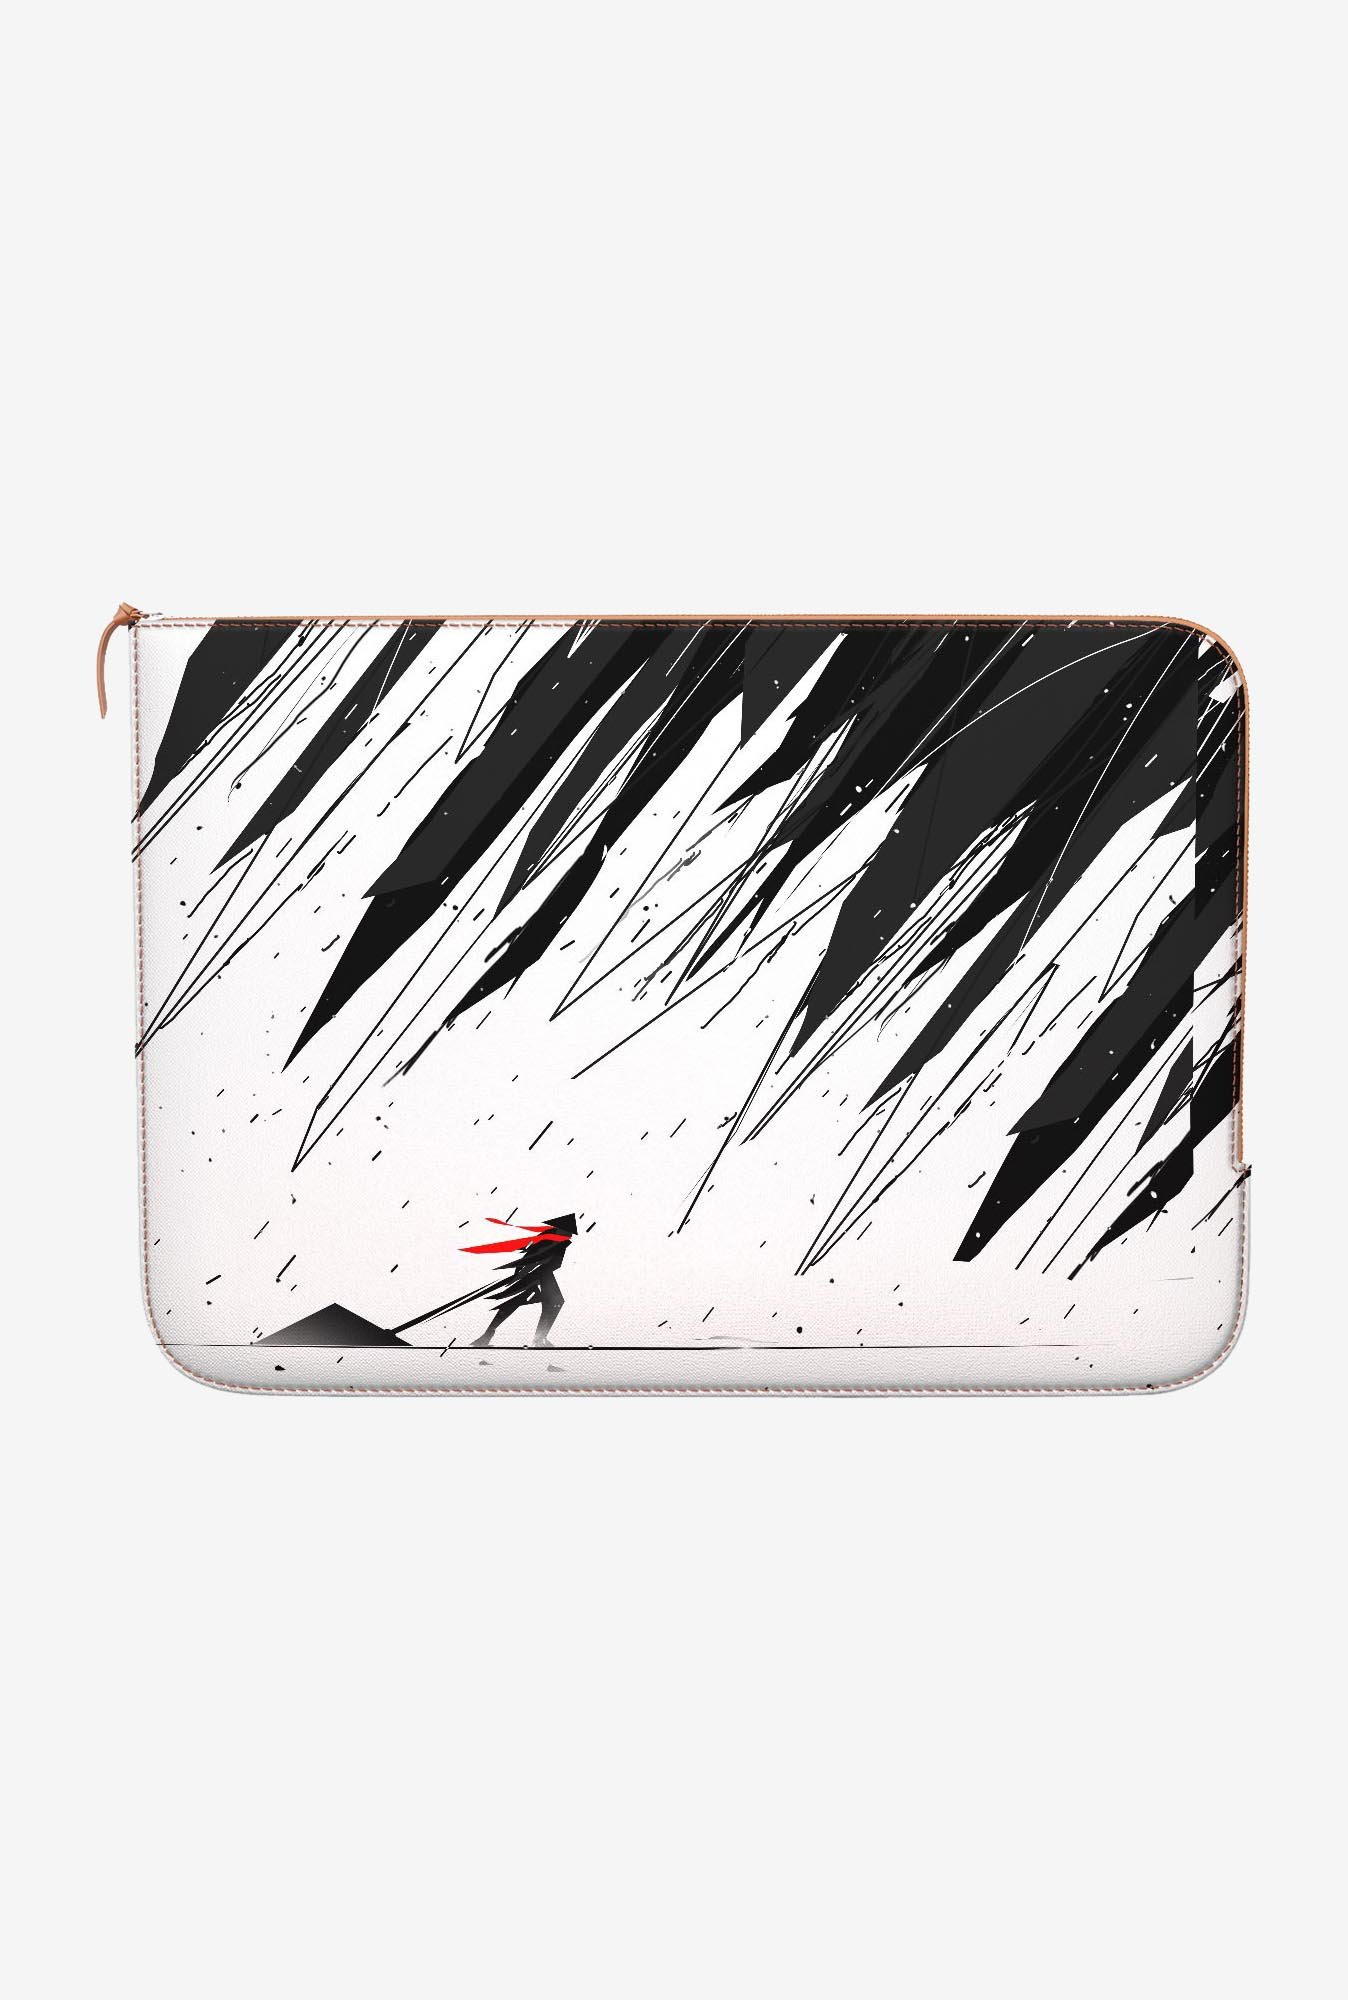 DailyObjects Geometric Storm MacBook Air 13 Zippered Sleeve